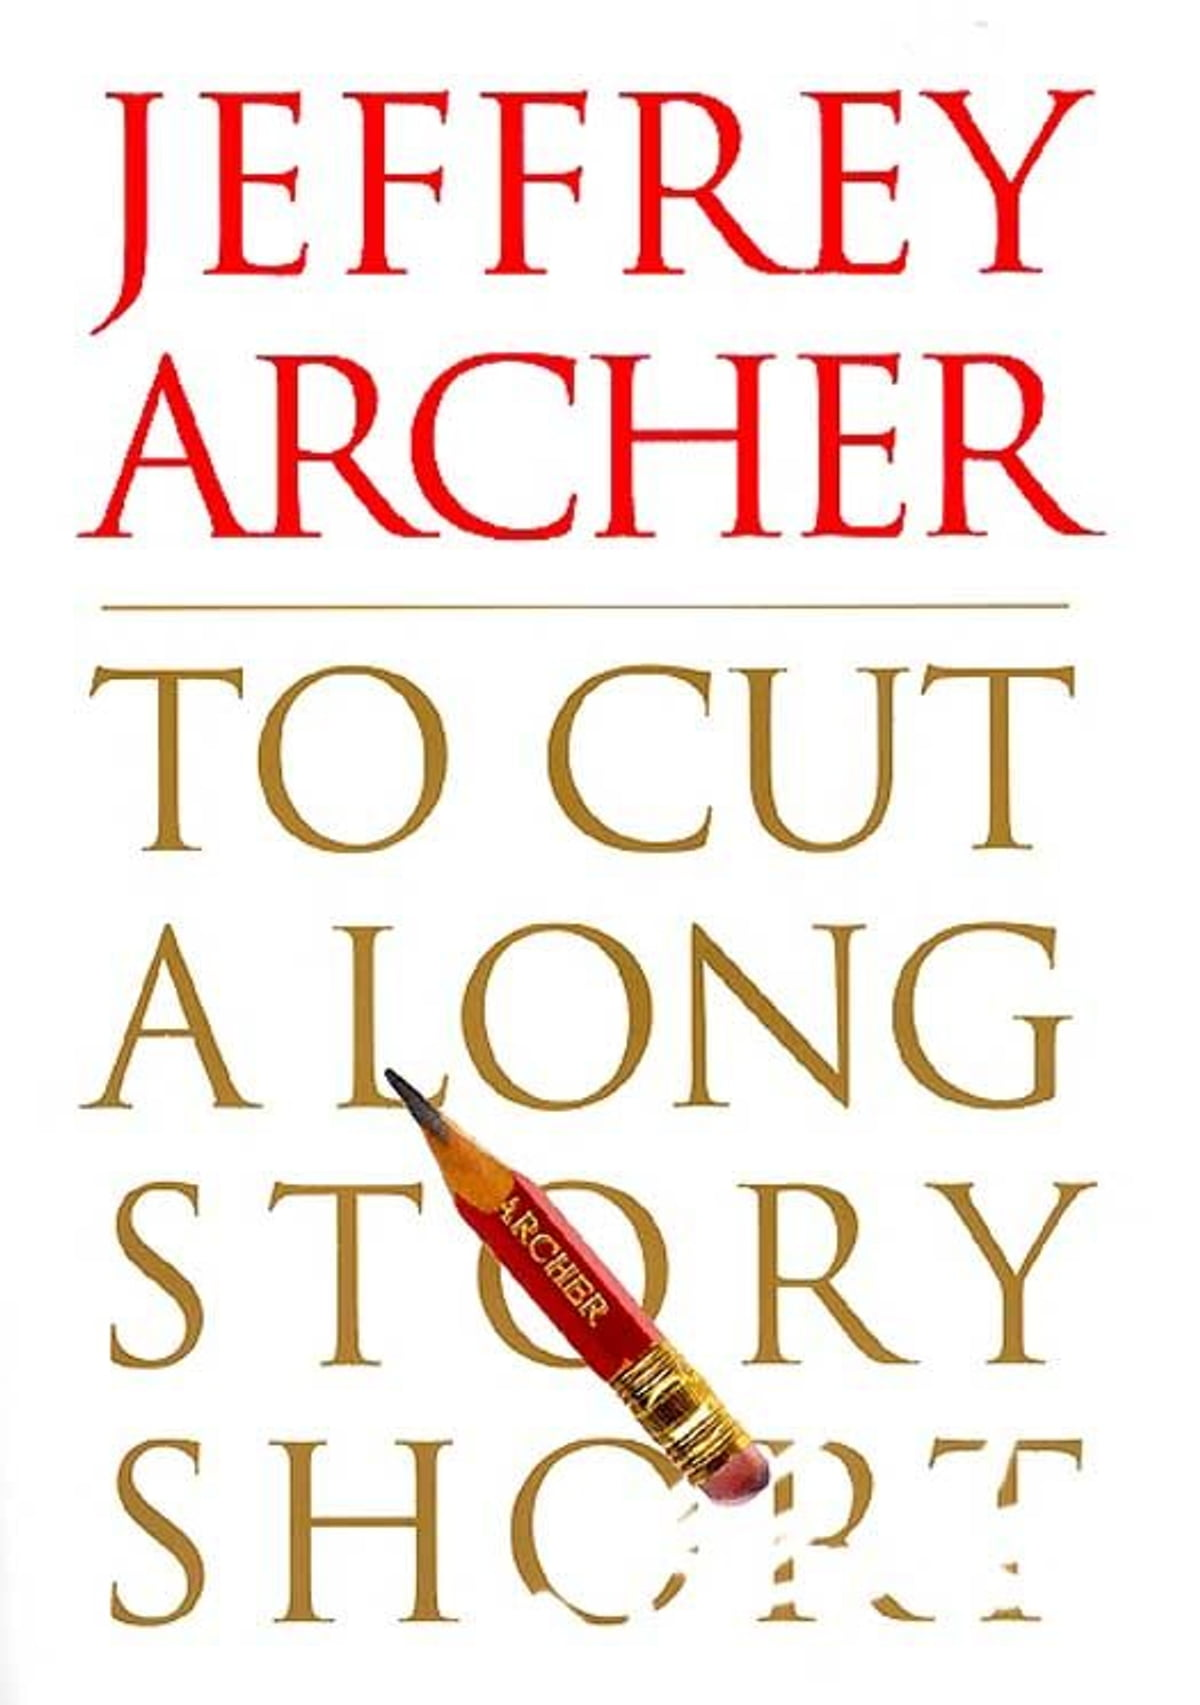 old love by jeffrey archer summary Jeffrey howard archer, baron archer of weston-super-mare (born 15 april 1940) is an english author and former politician plot summary the story is told in the first person by a married man who has been having an affair with beautiful, 31-year-old pimlico secretary carla moorland.